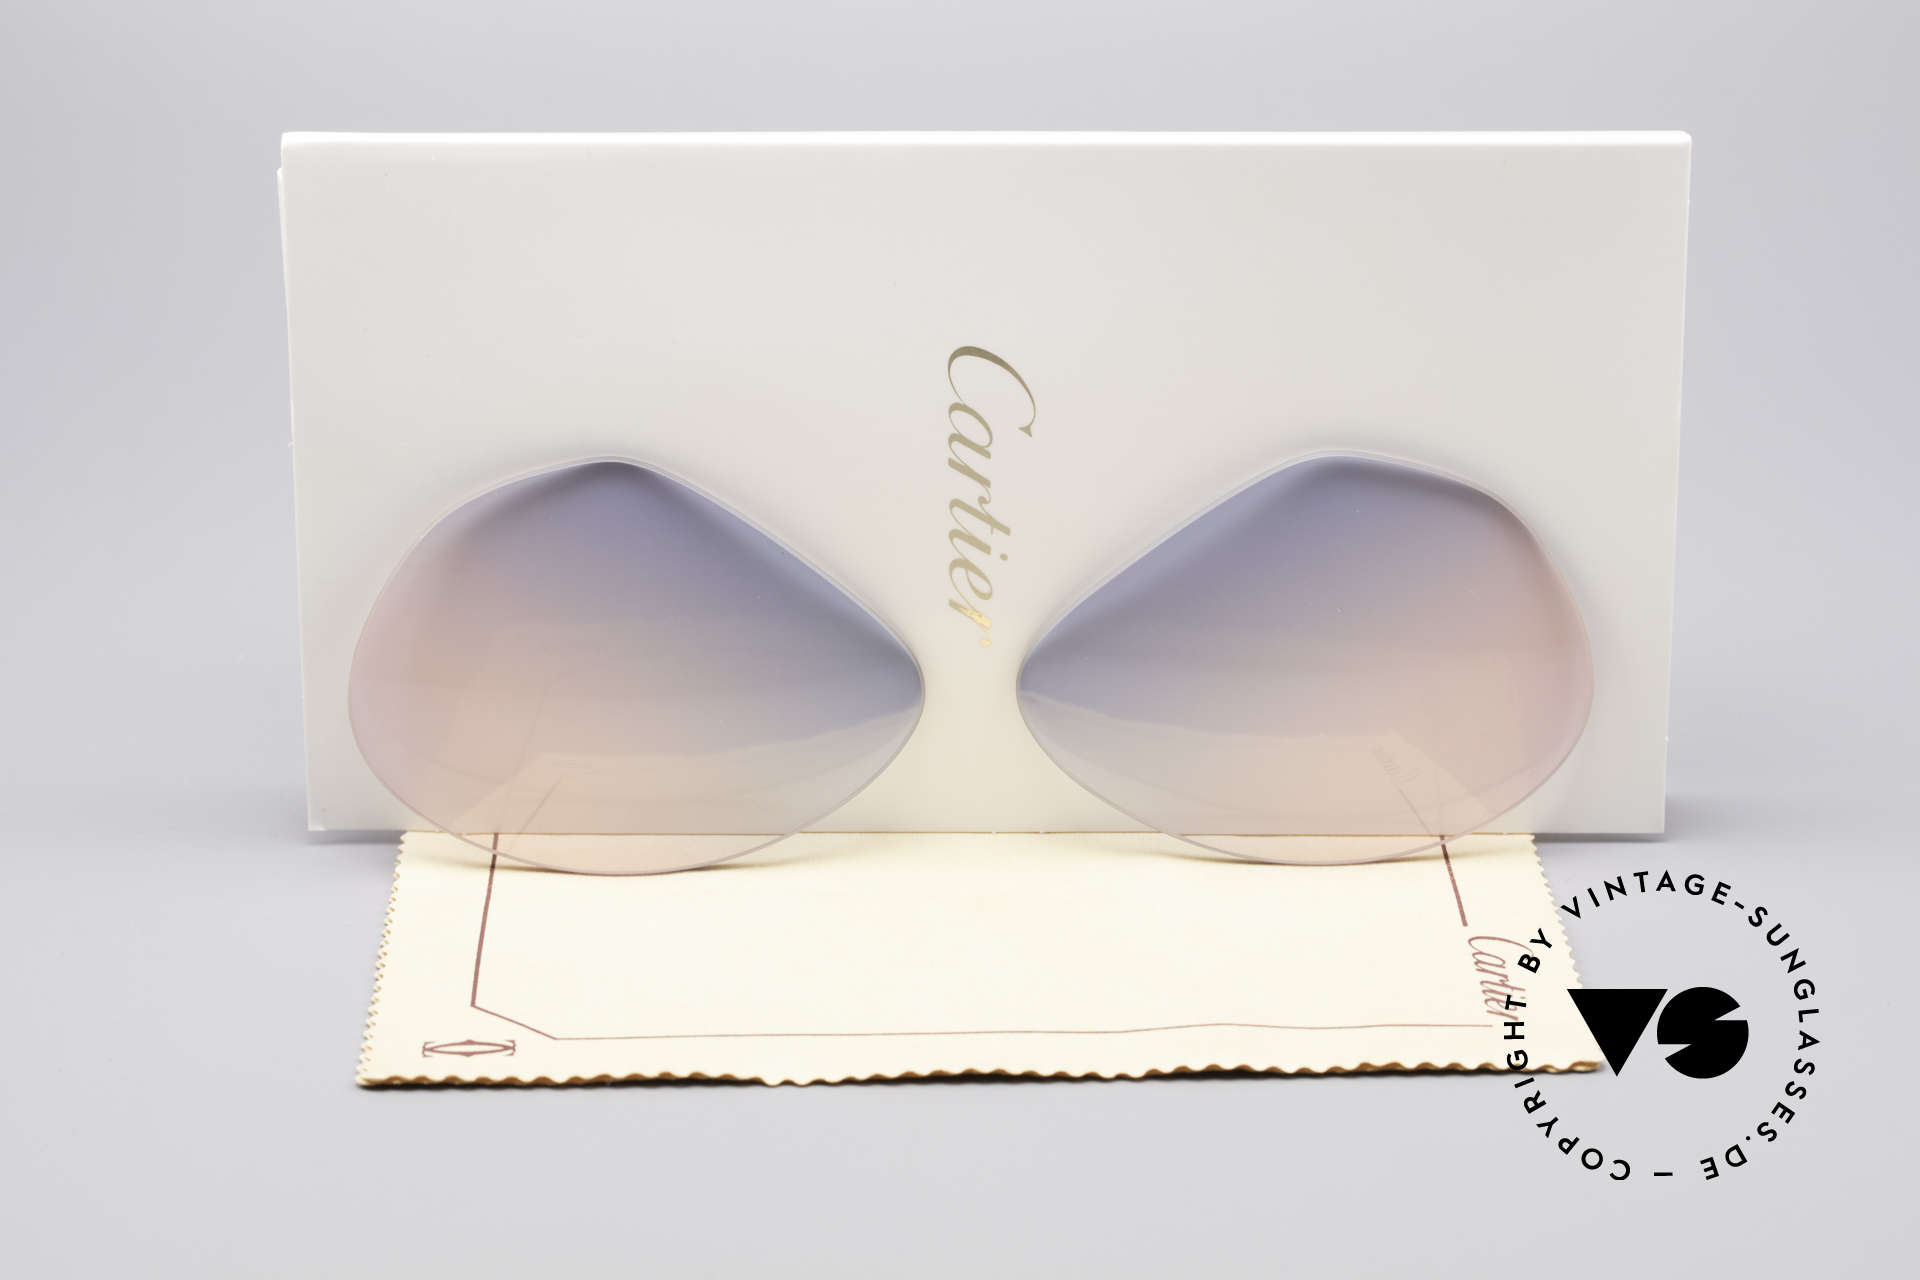 Cartier Vendome Lenses - L Sun Lenses Blue Pink Gradient, replacement lenses for Cartier mod. Vendome 62mm size, Made for Men